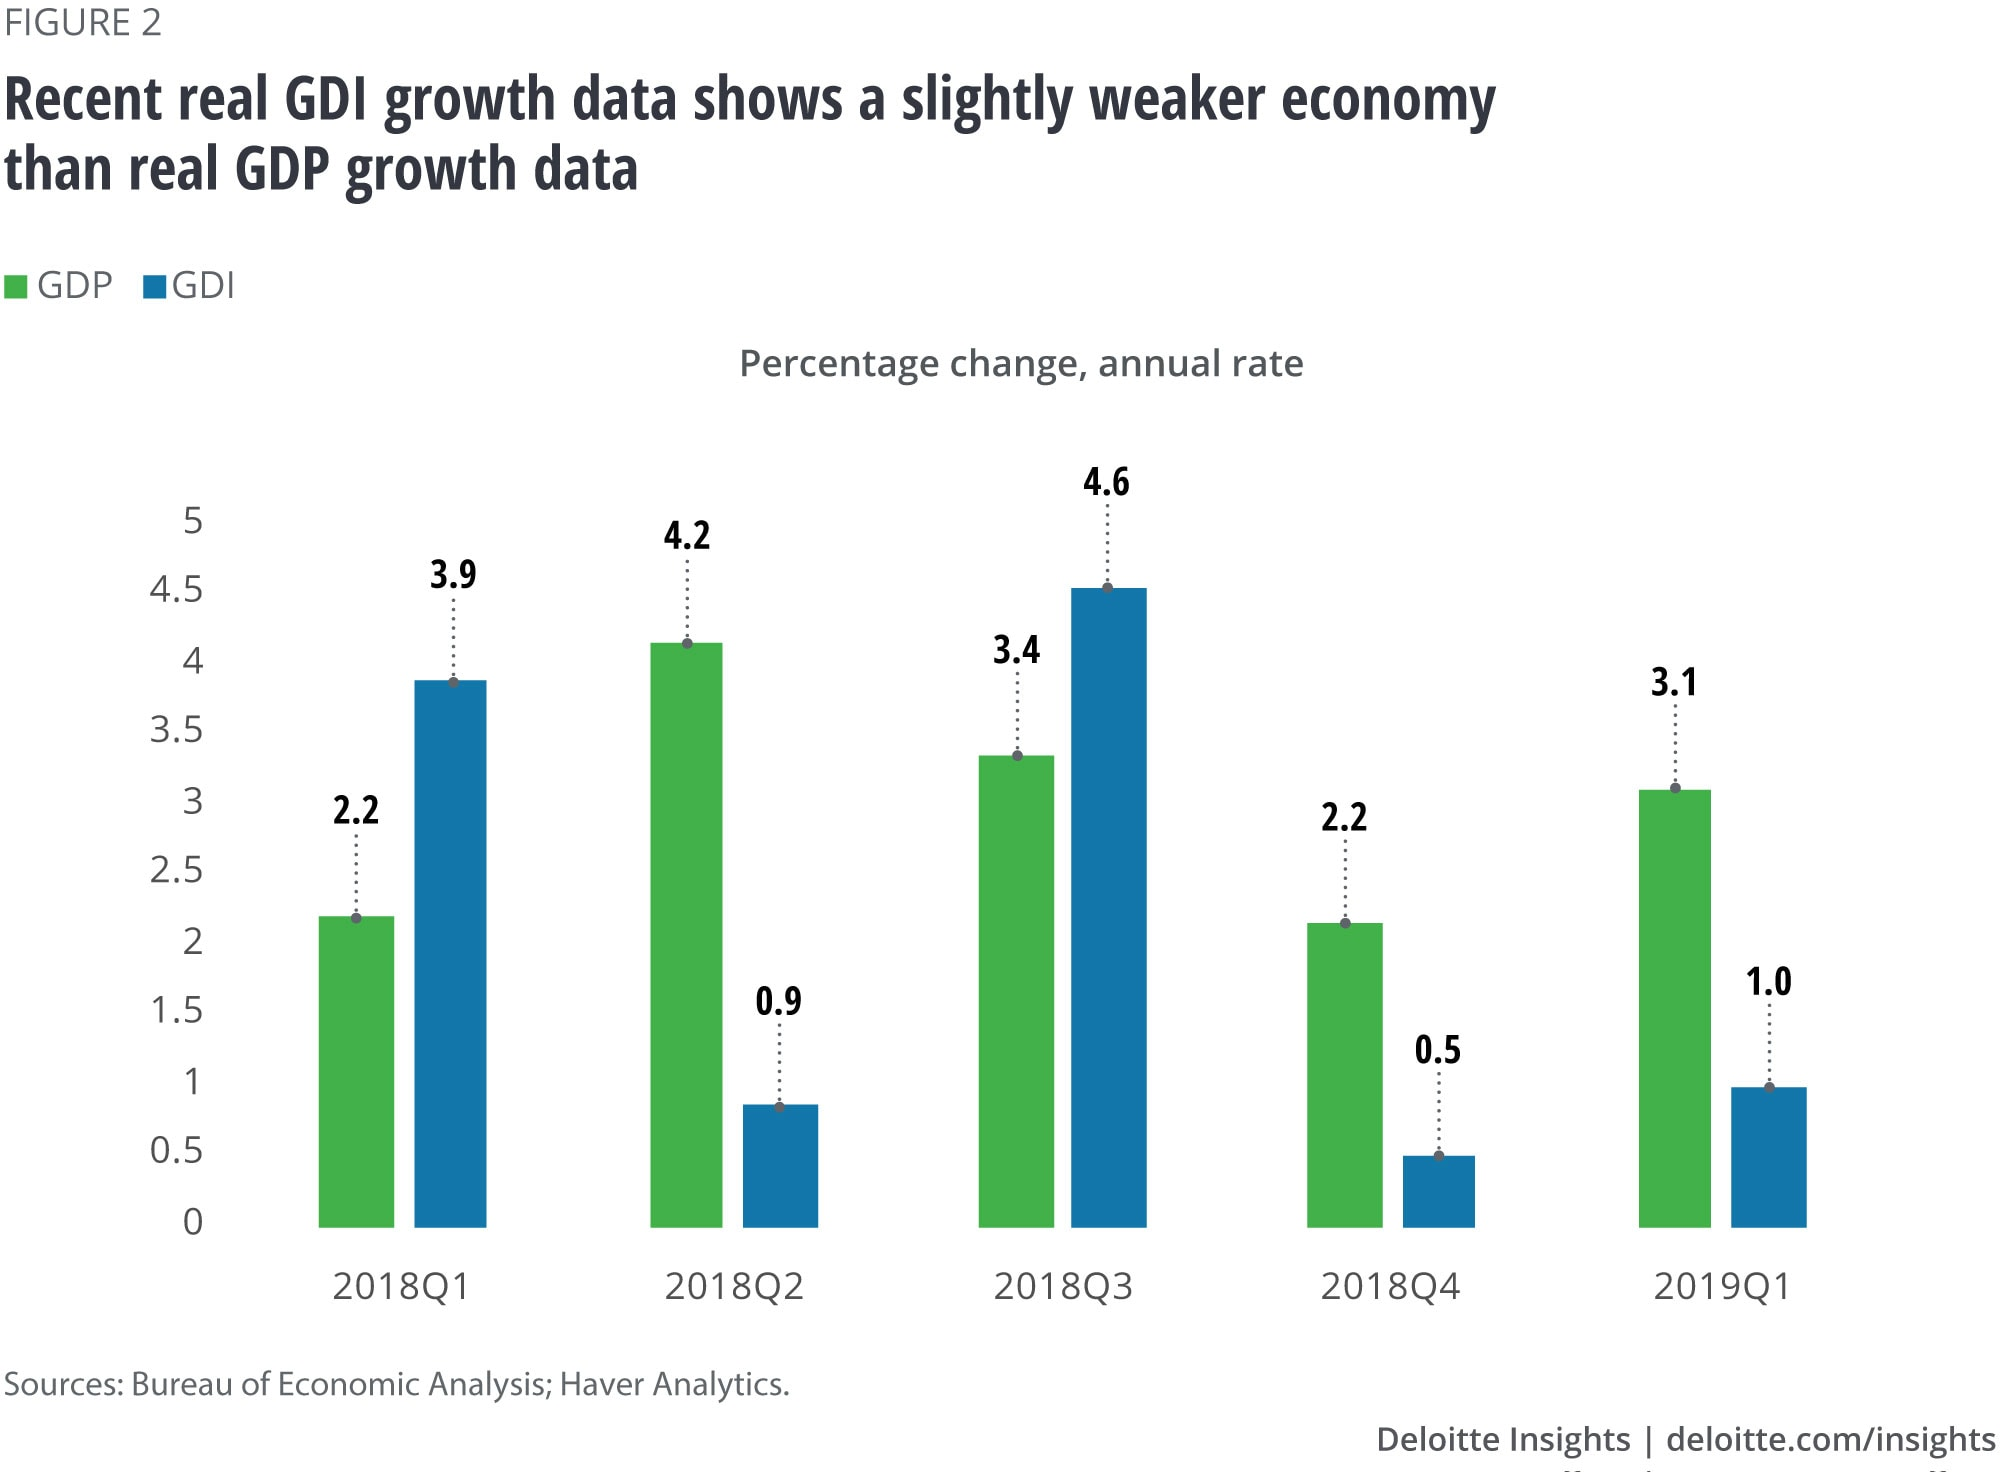 Recent real GDI growth data shows a slightly weaker economy than real GDP growth data